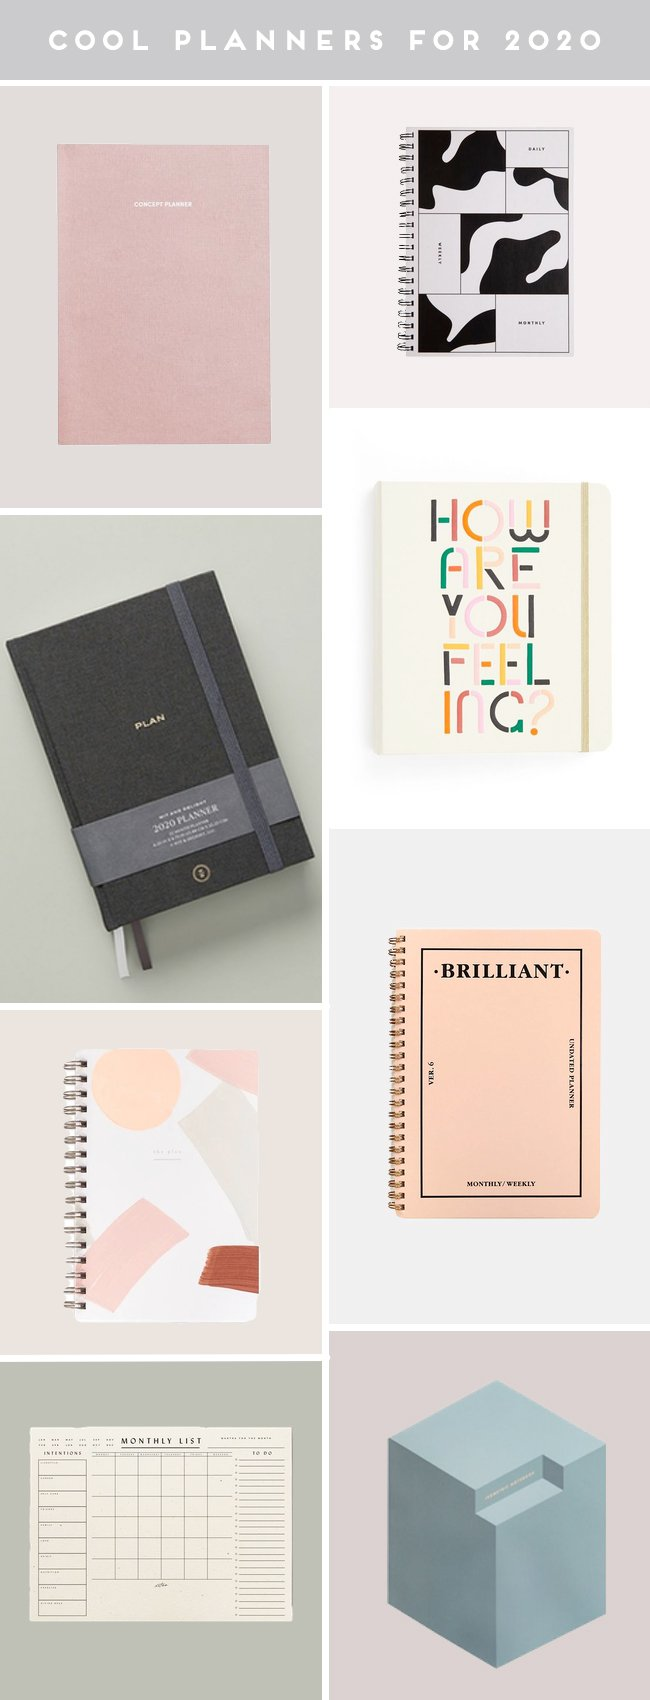 A product roundup of cool planners for 2020 in various colors and styles